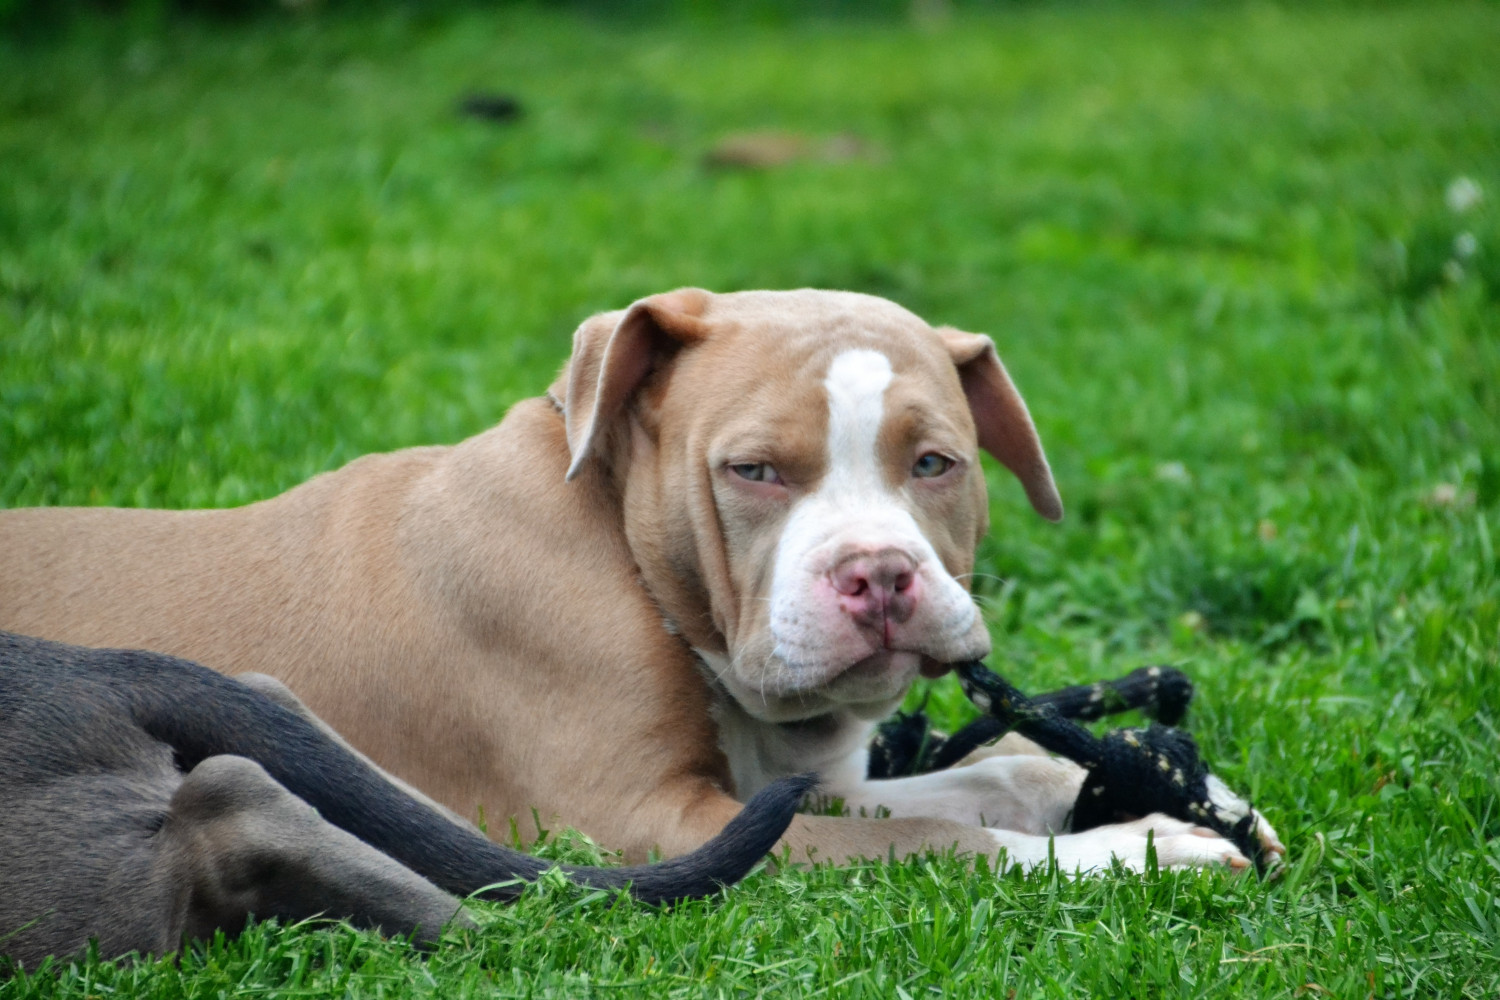 American Bully Puppies For Sale | Danbury, CT #226587